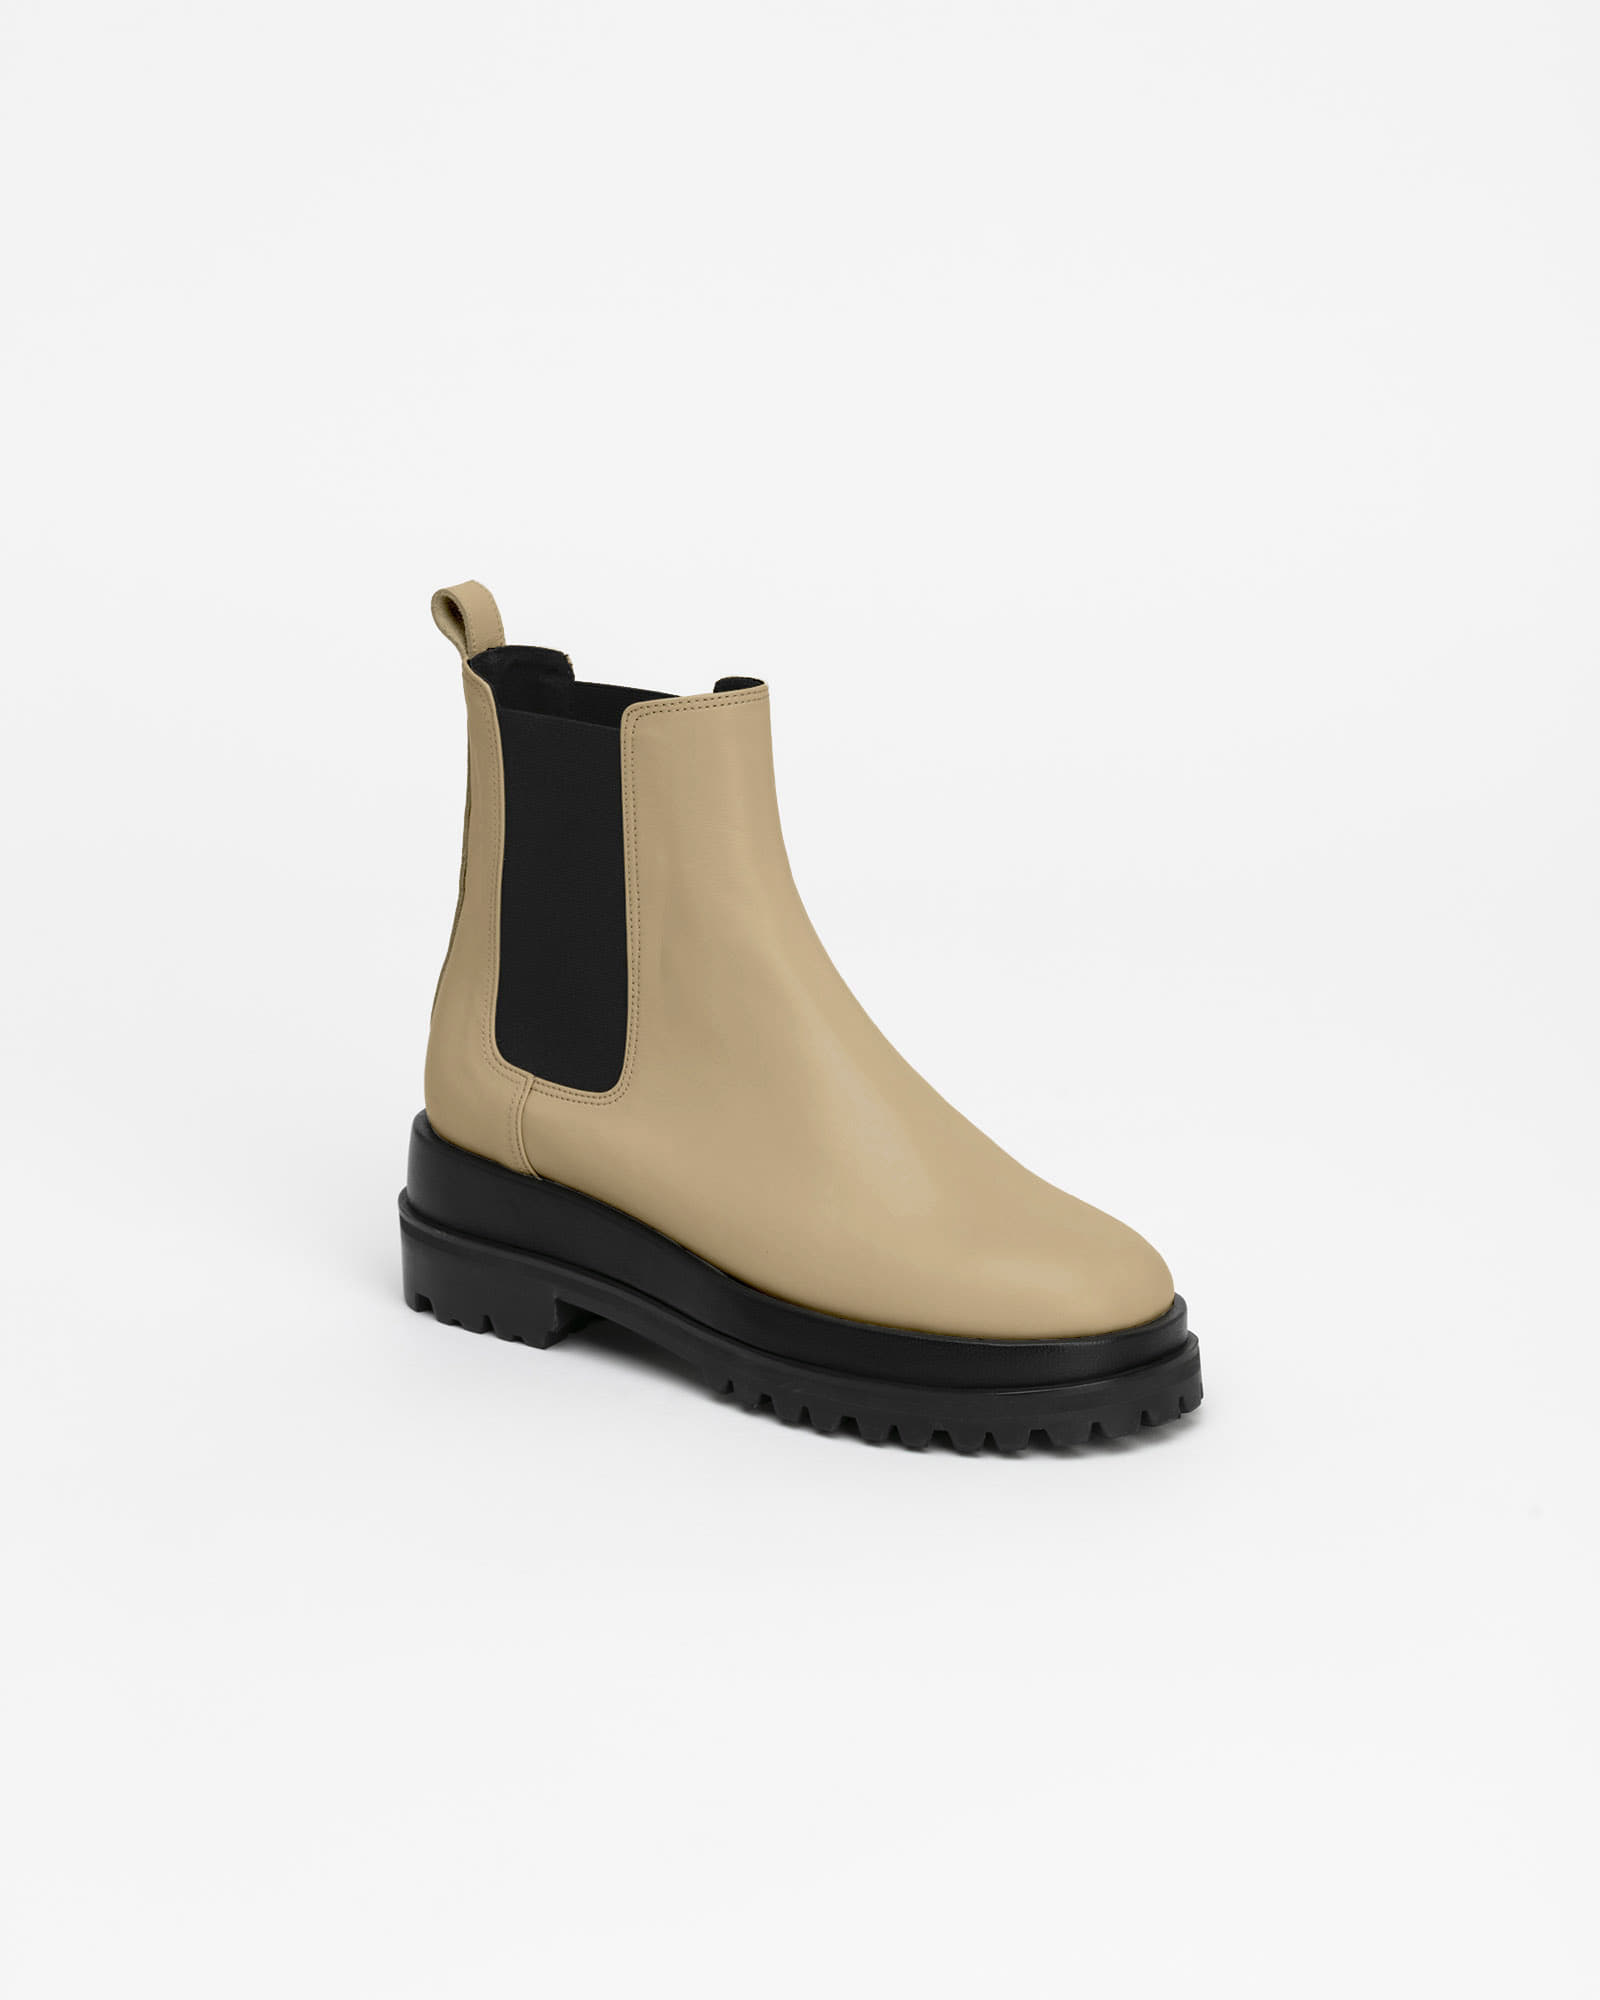 Ballon Double Sole Chelsea Boots in Beige